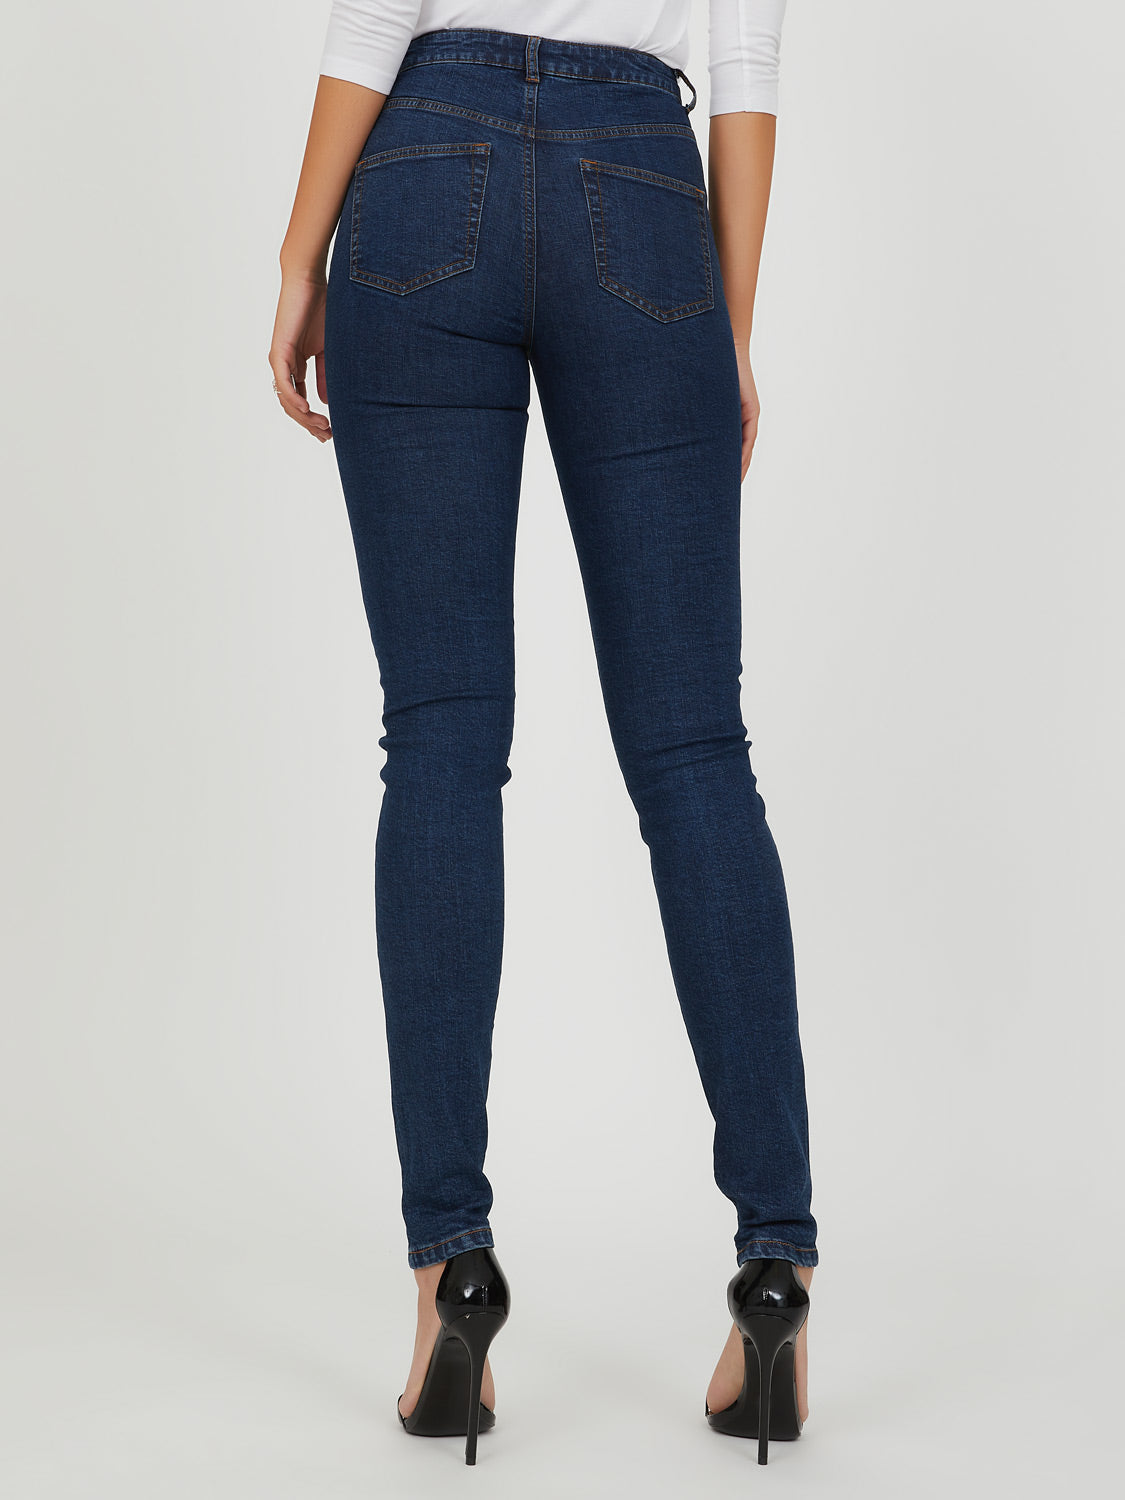 Pantalon ajusté en denim